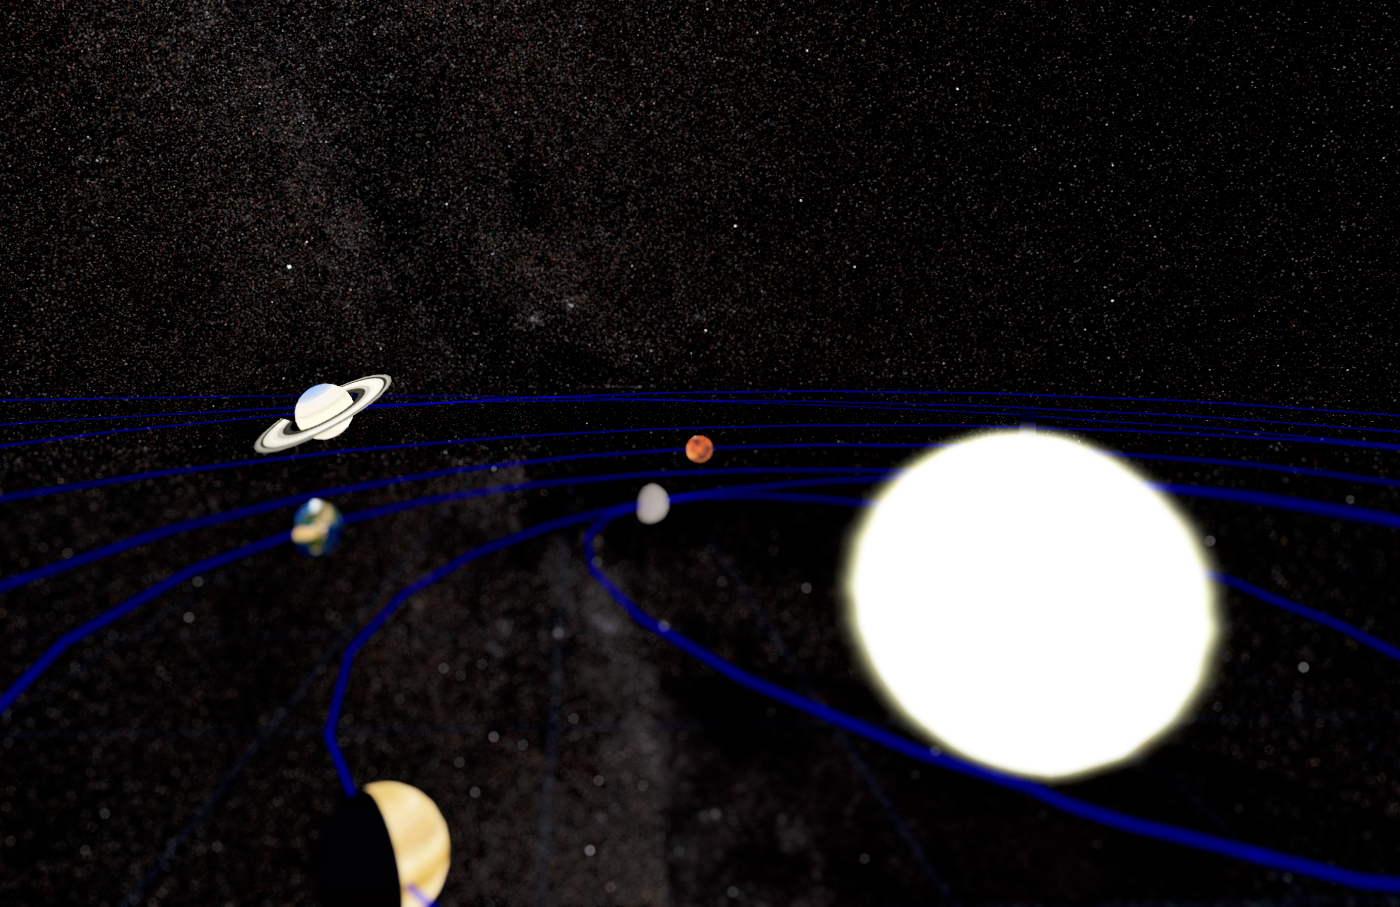 The Solar System shown in